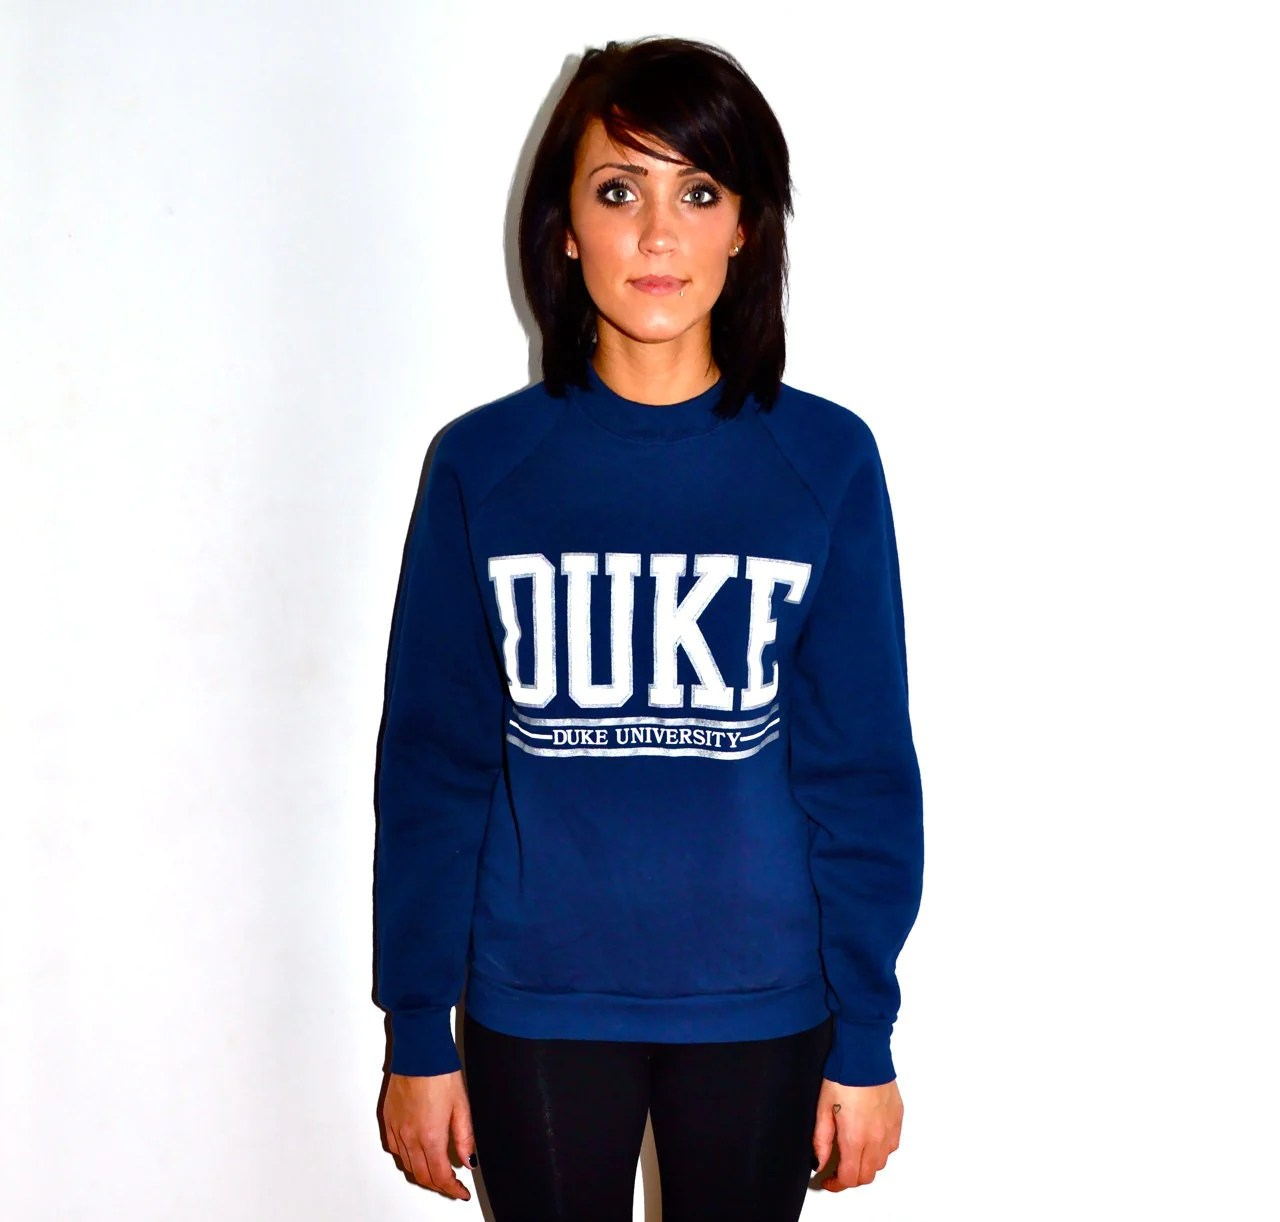 Duke University Sweatshirt